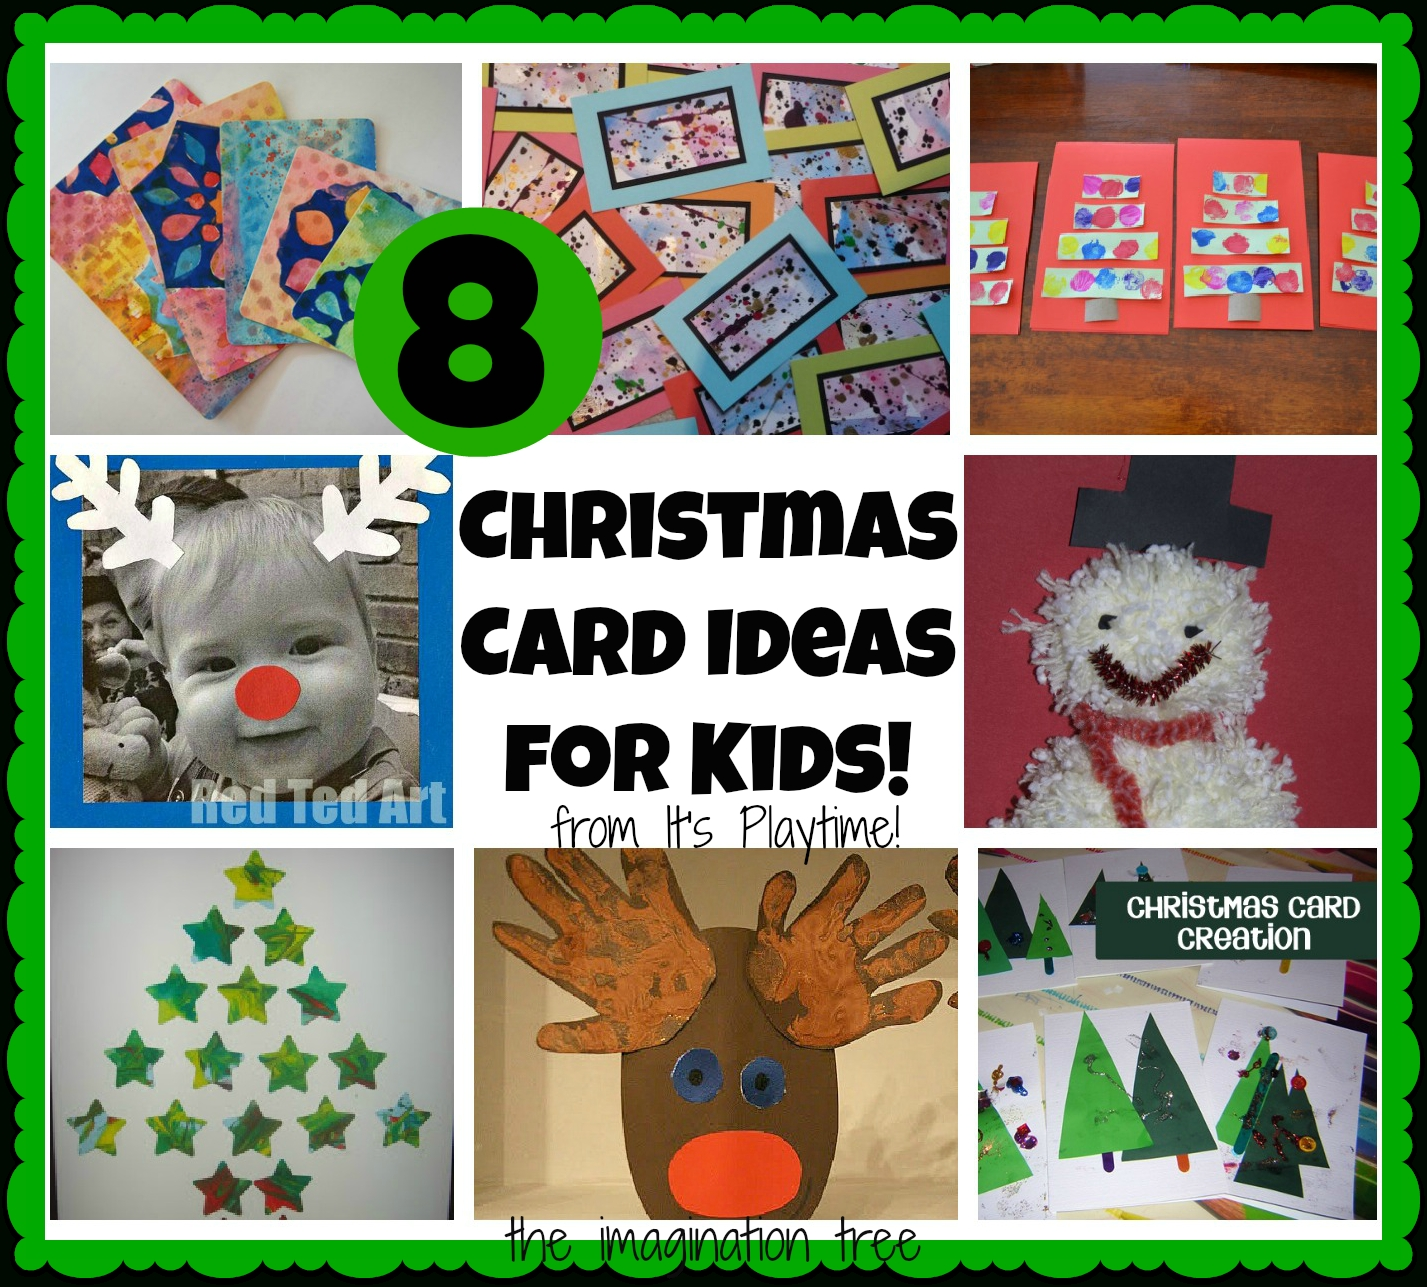 10 Fashionable Christmas Card Picture Ideas Kids 8 christmas cards kids can make its playtime the imagination tree 3 2020